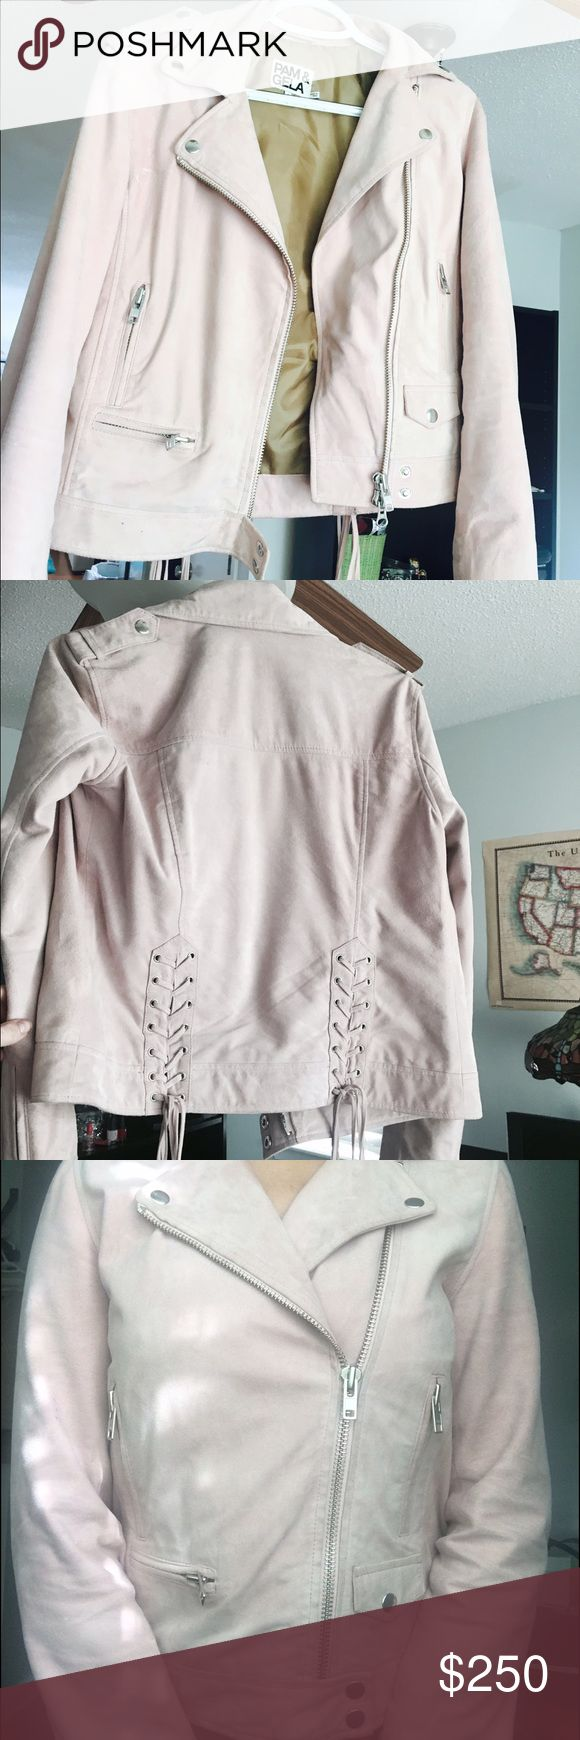 Pam&Gela authentic suede  jacket❤️ Condition very good, light pink color Jackets & Coats